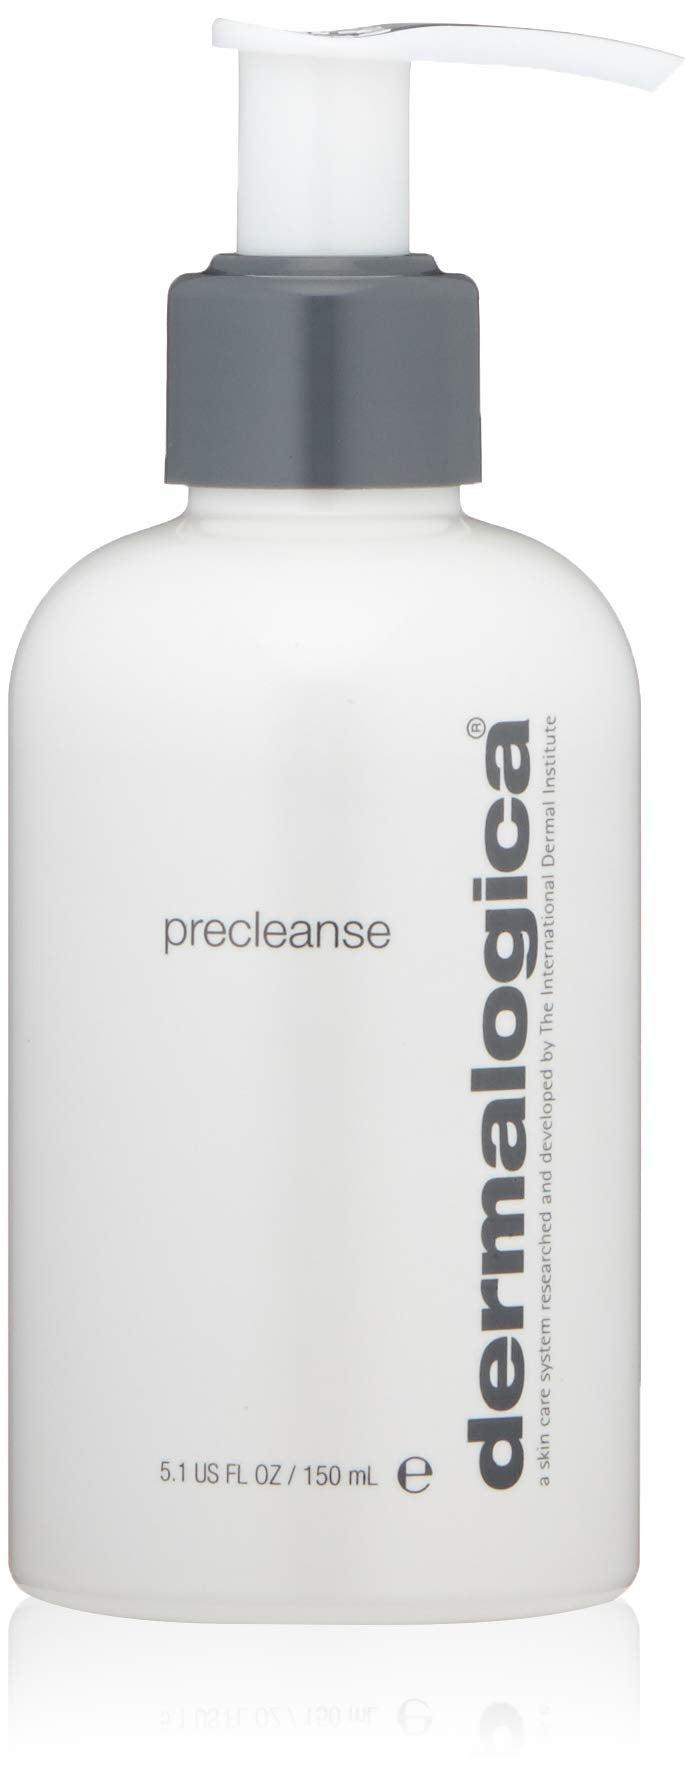 """<h3>Dermalogica Precleanse</h3><br><strong>Meg</strong><br><br>""""It's helped reduce my closed comedones, and it smells wonderful. An aesthetician recommended it for helping to remove makeup before cleanser, and then she also mentioned that it's good at taking care of deodorant and sunscreen residue on the skin. Who knew?""""<br><br><strong>Dermalogica</strong> Precleanse, $, available at <a href=""""https://amzn.to/3dd5Esi"""" rel=""""nofollow noopener"""" target=""""_blank"""" data-ylk=""""slk:Amazon"""" class=""""link rapid-noclick-resp"""">Amazon</a>"""